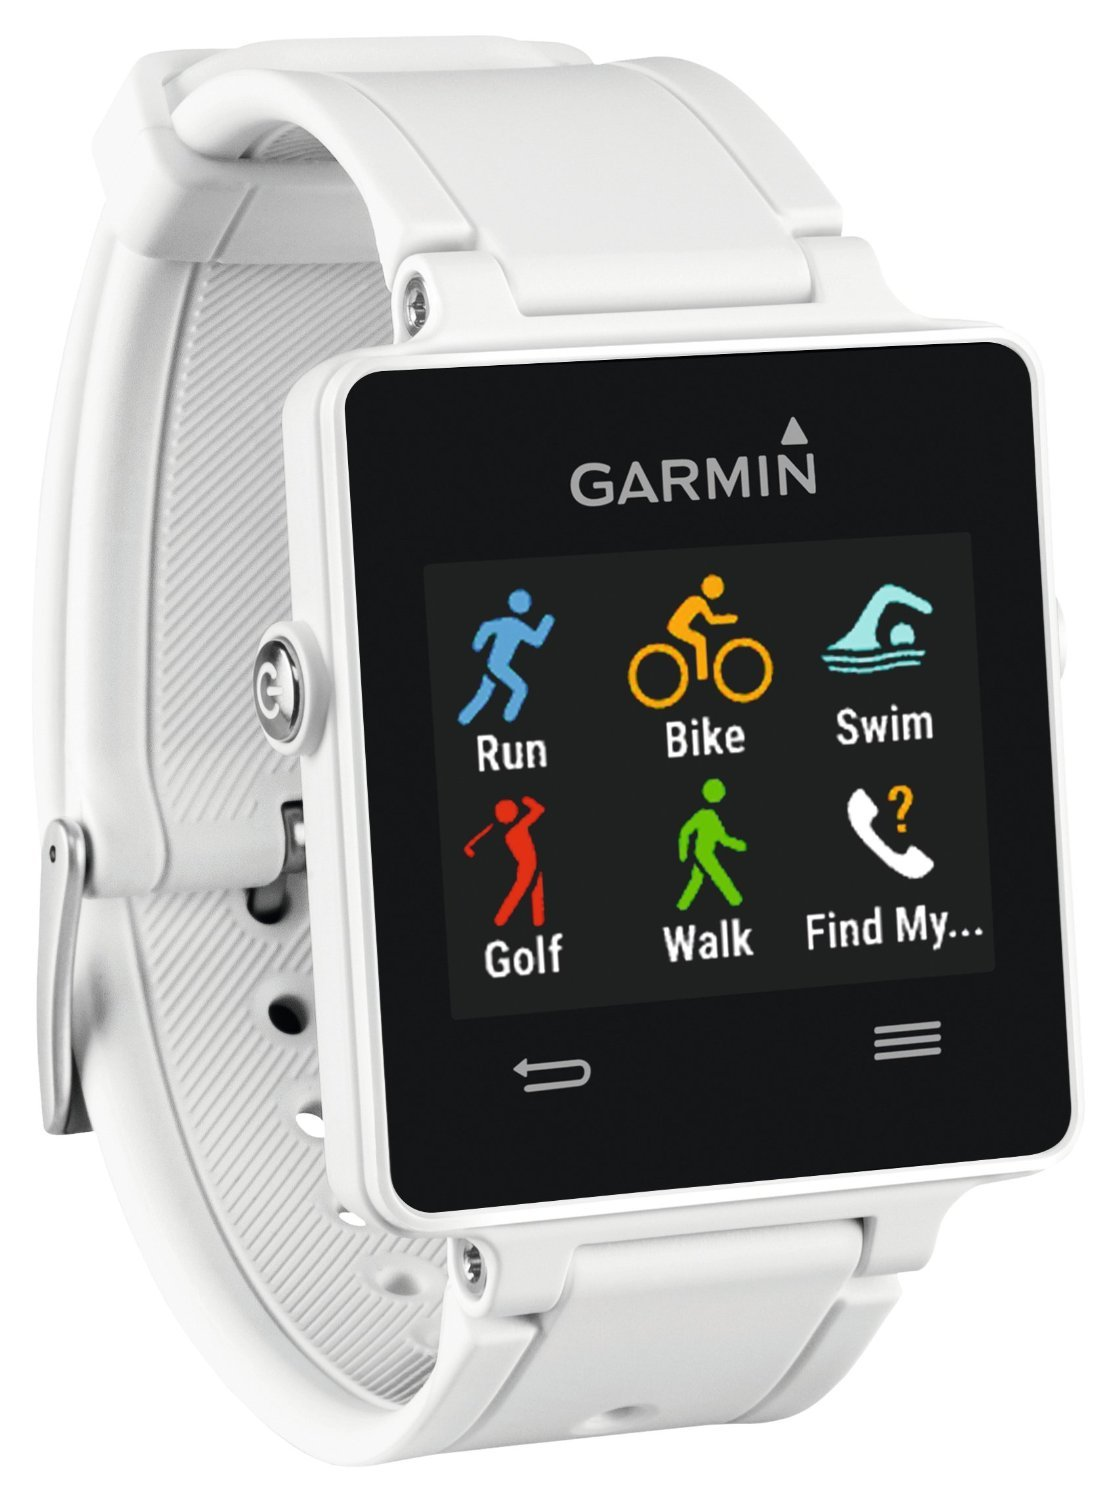 Garmin Vivoactive White (Certified Refurbished)